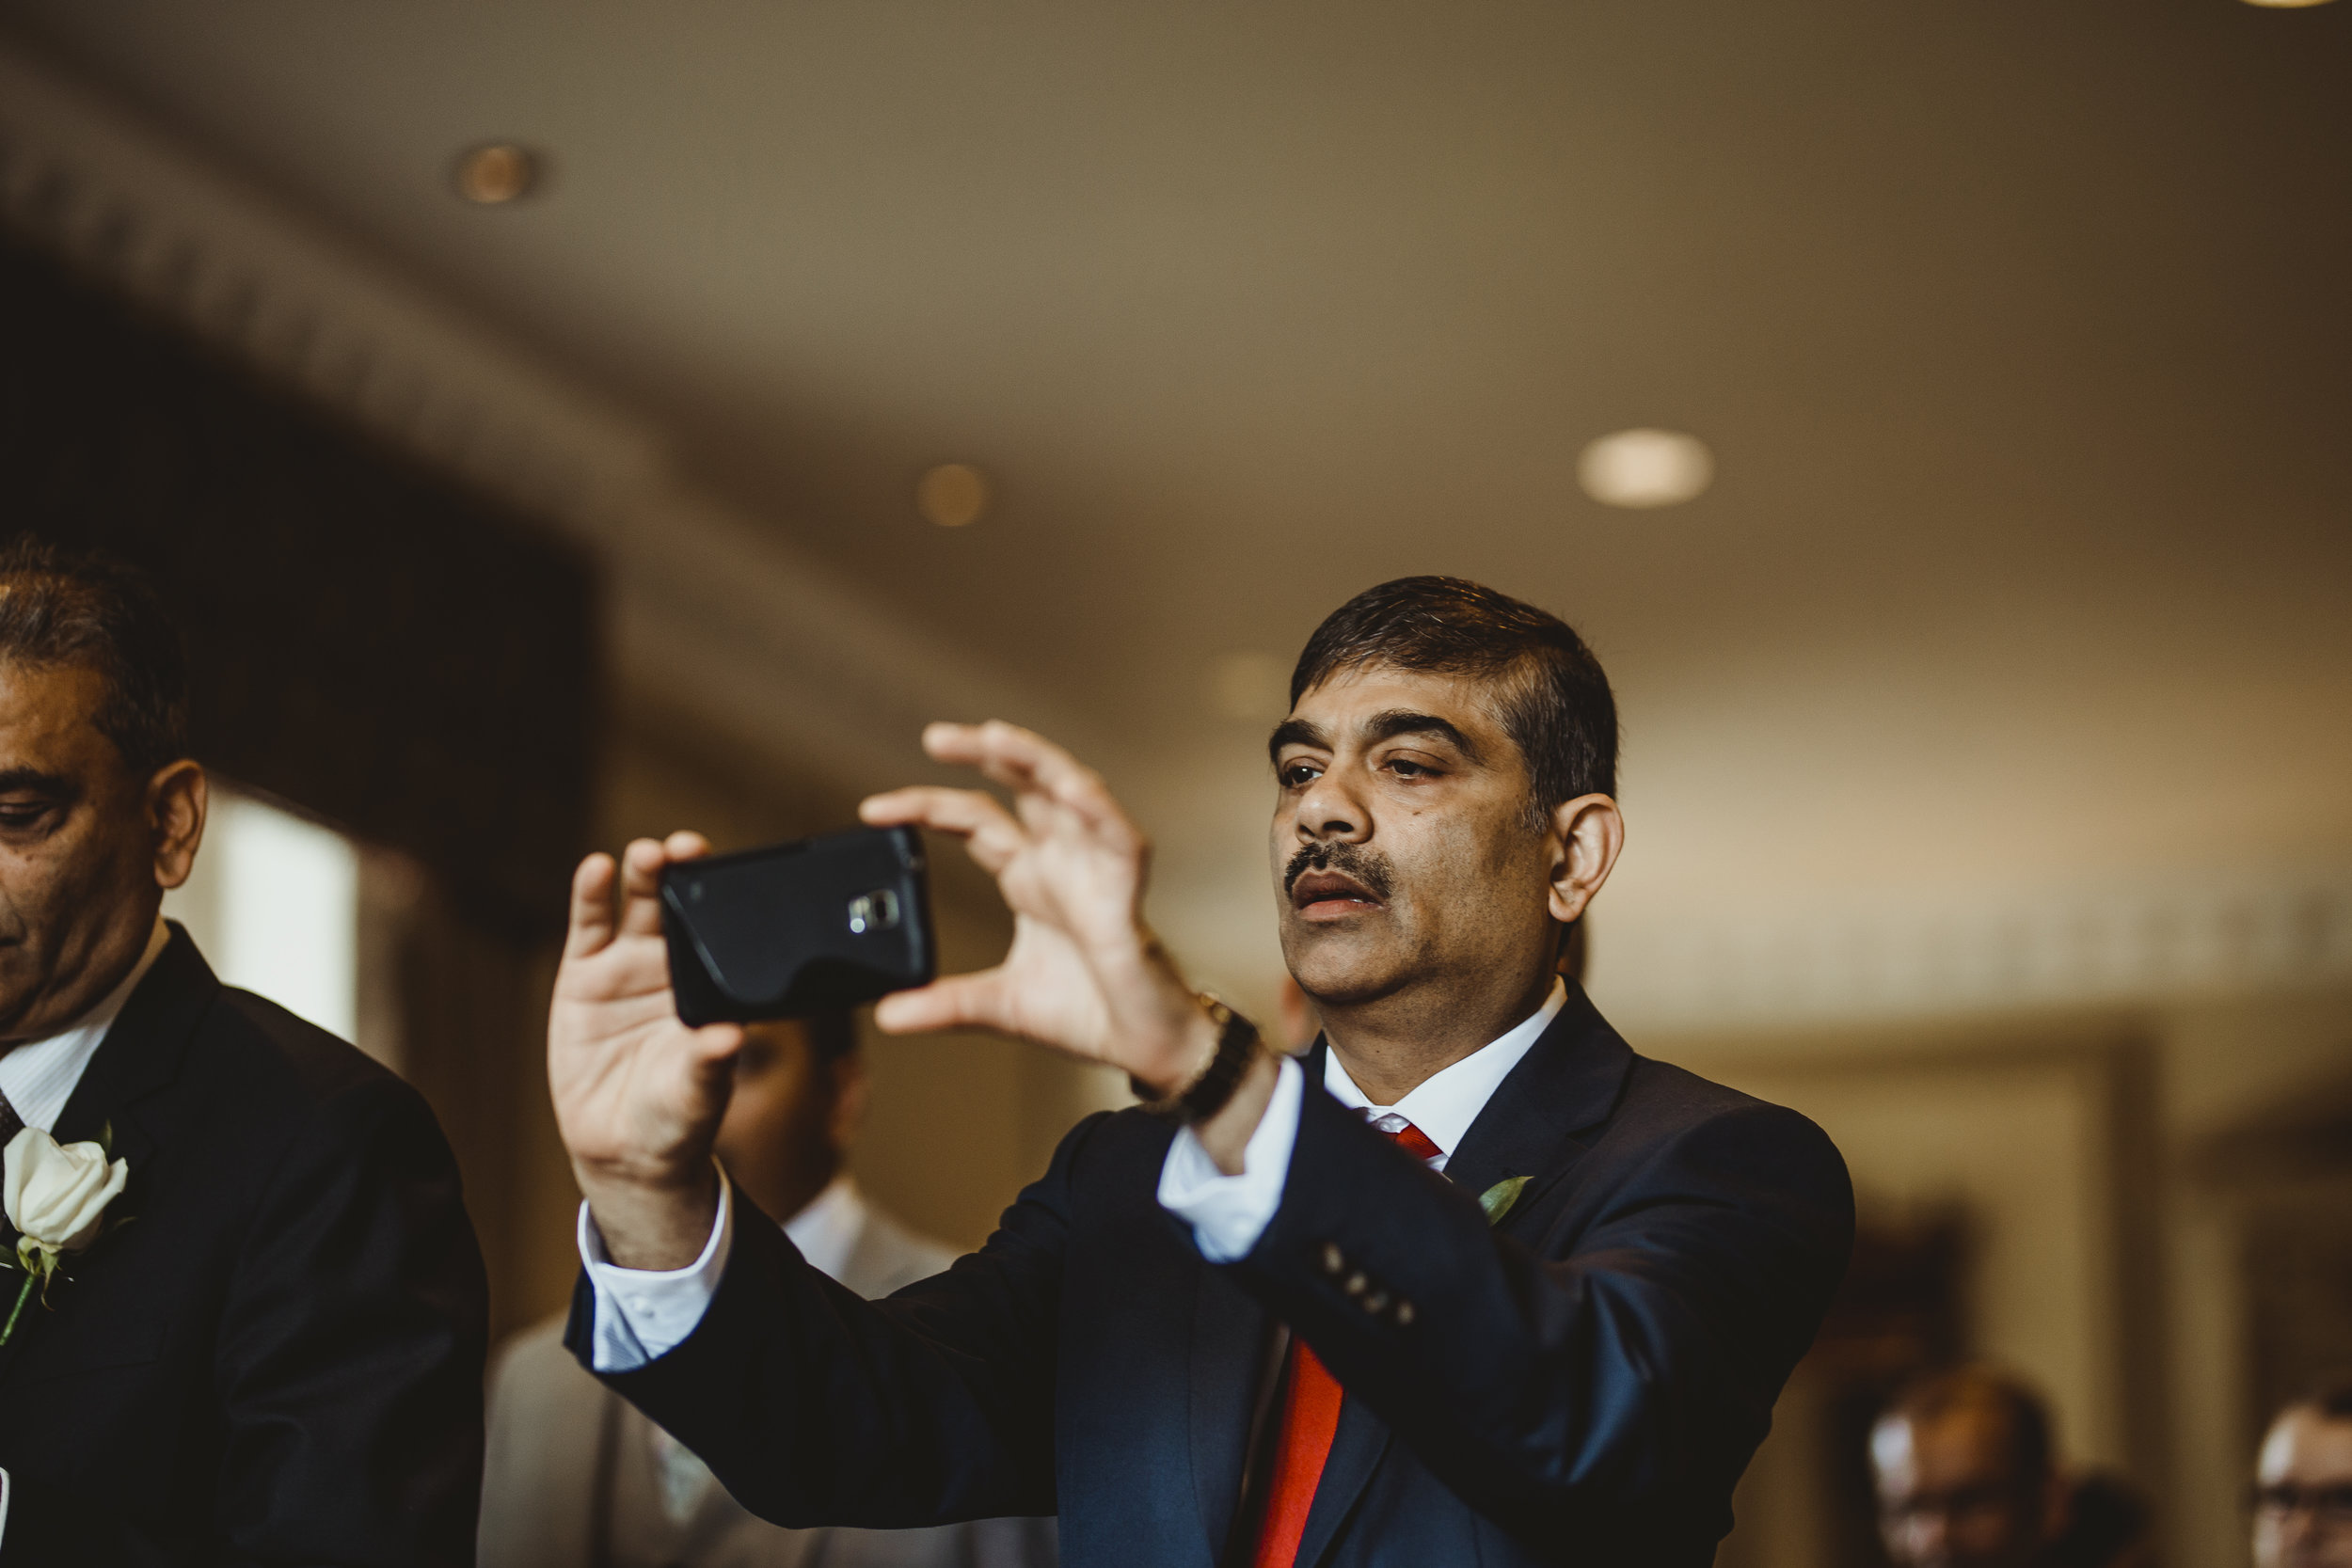 N&J_MILTON_KEYNES_WEDDING_LONDON_PHOTOGRAPHER_ASIAN_WEDDING-431.JPG